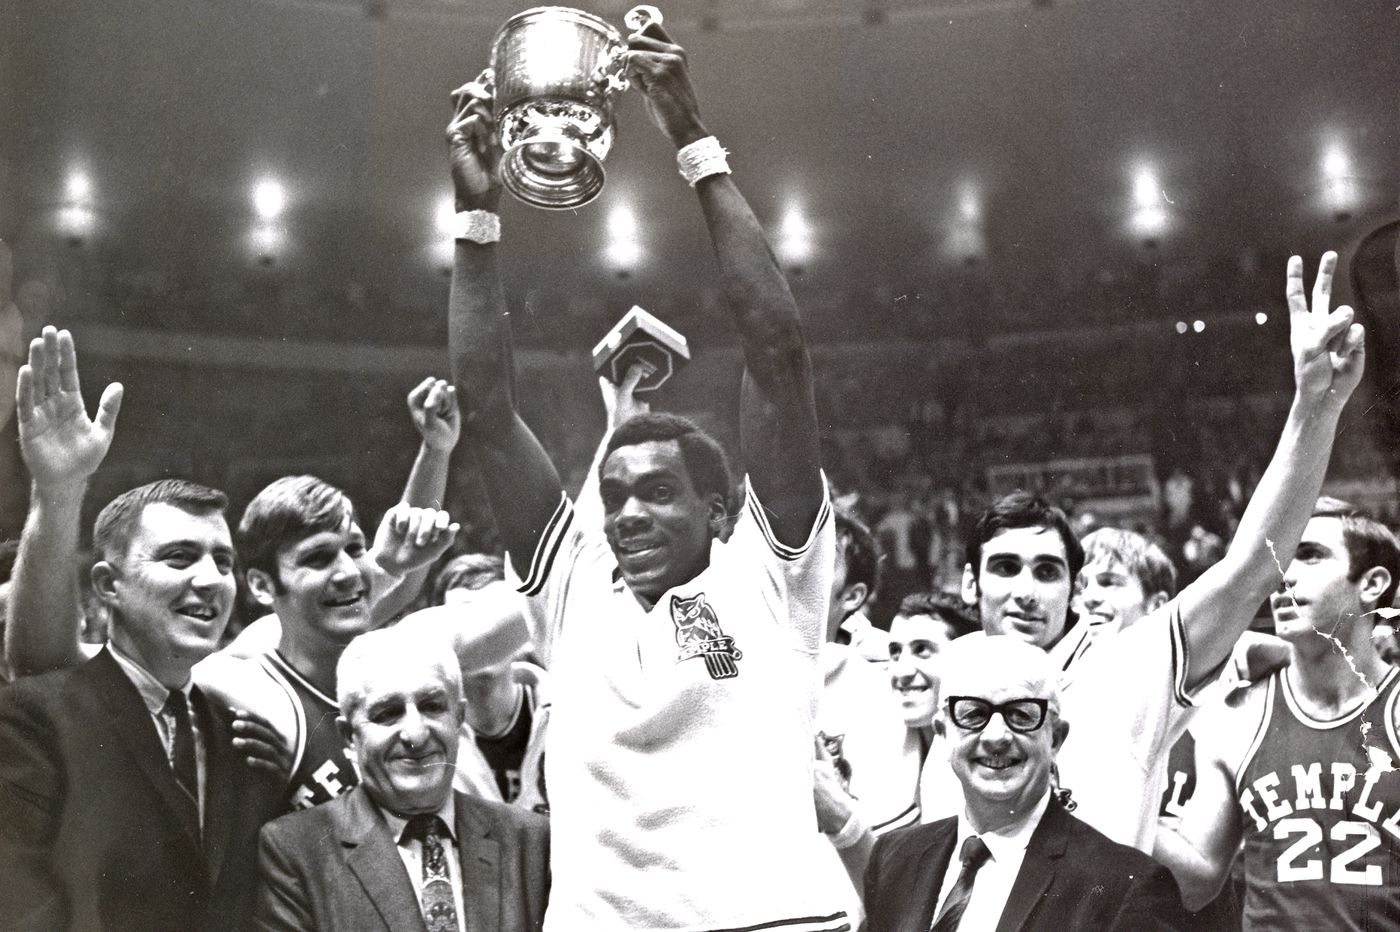 Temple's 1969 team will be honored on the 50th anniversary of NIT title